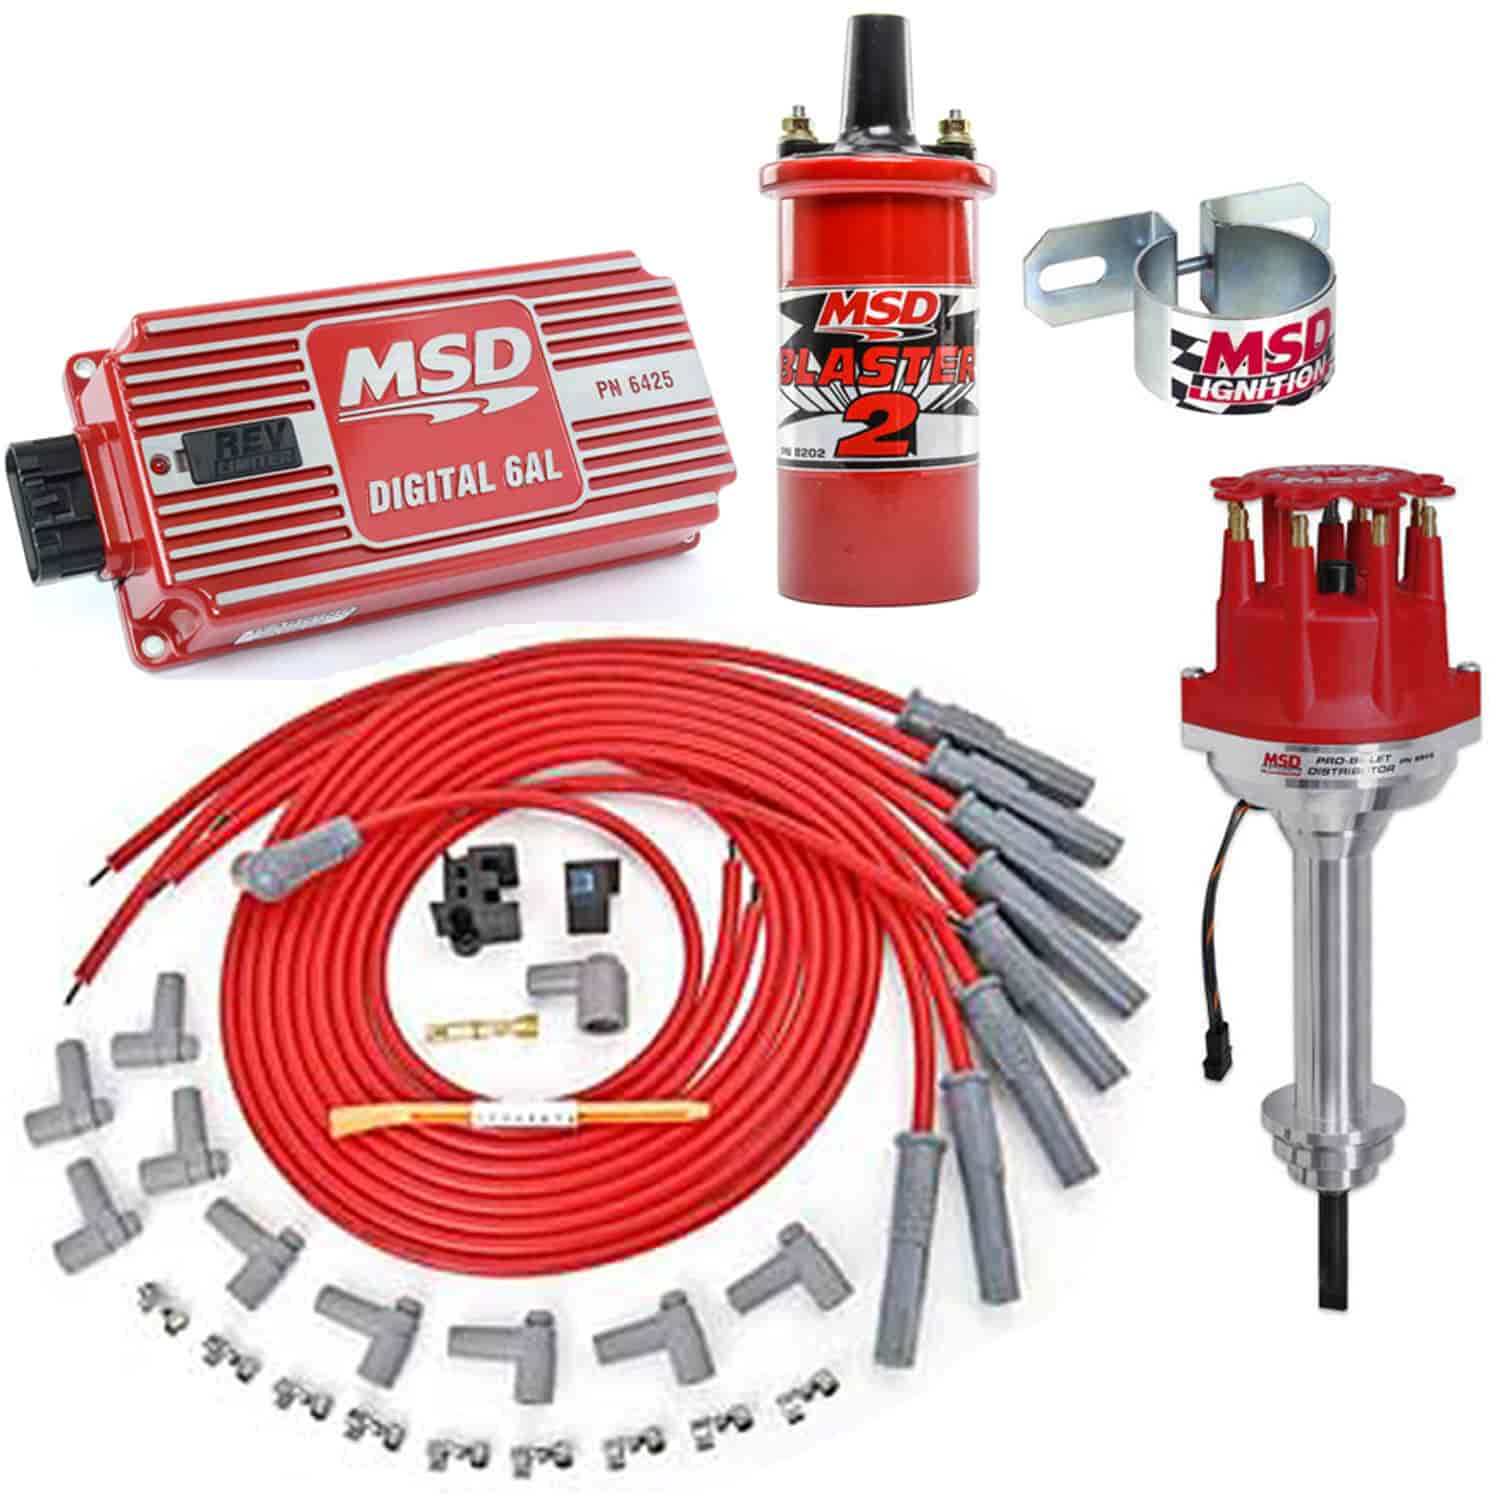 hight resolution of msd ignition 8546k ignition kit chrysler 426 440 jegs msd wiring harness chrysler